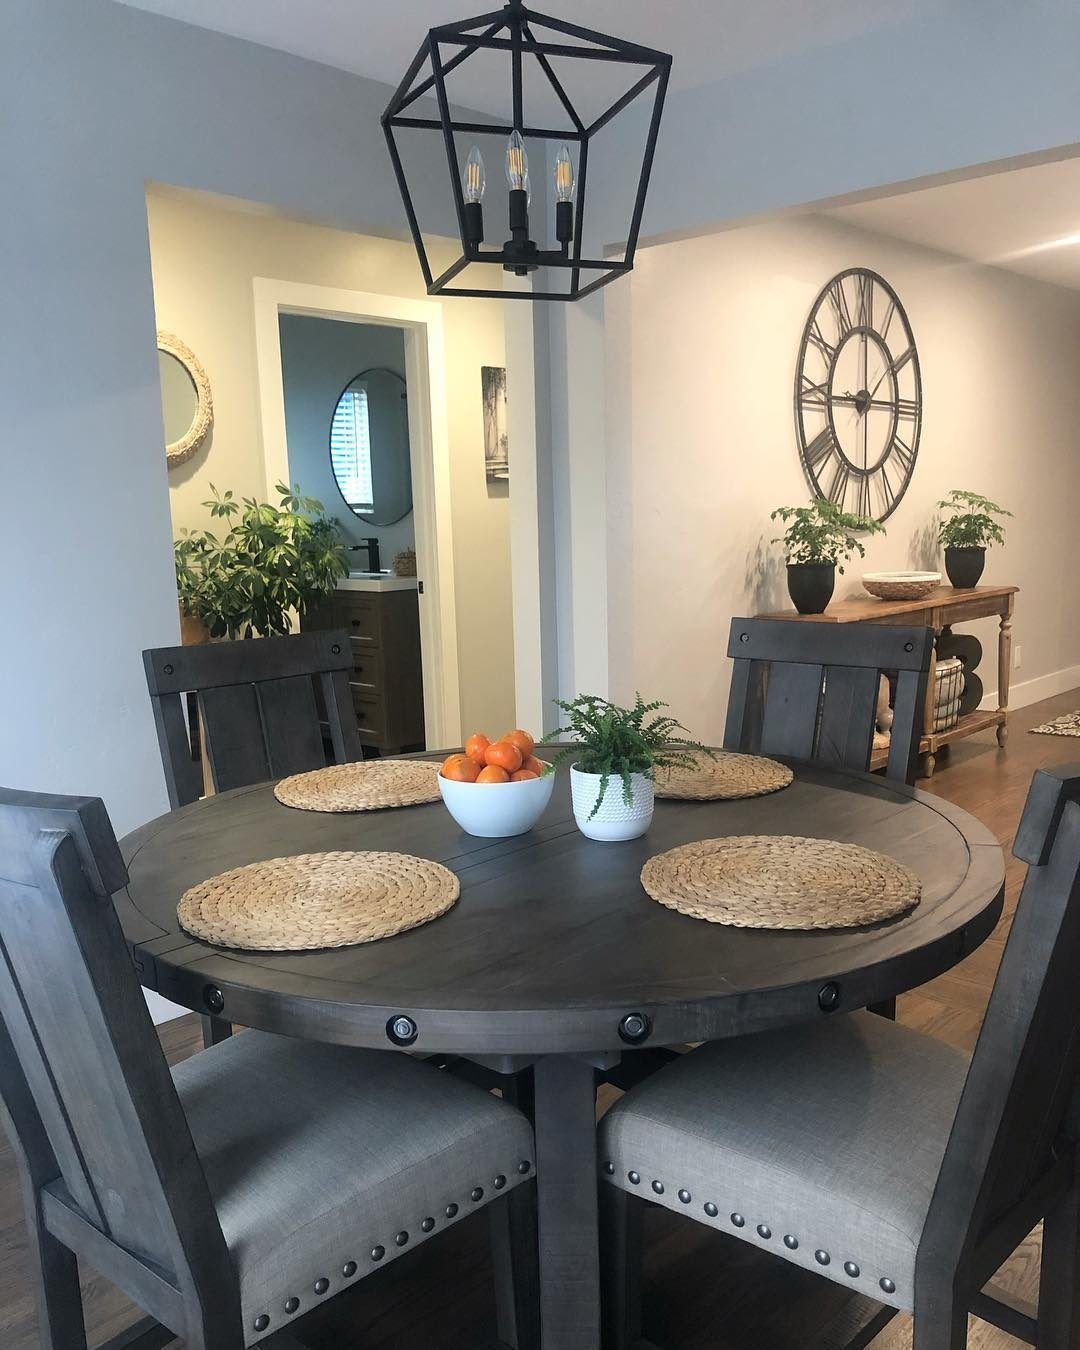 Pin by melahatk on Kitchen tables in 2021 Round dining